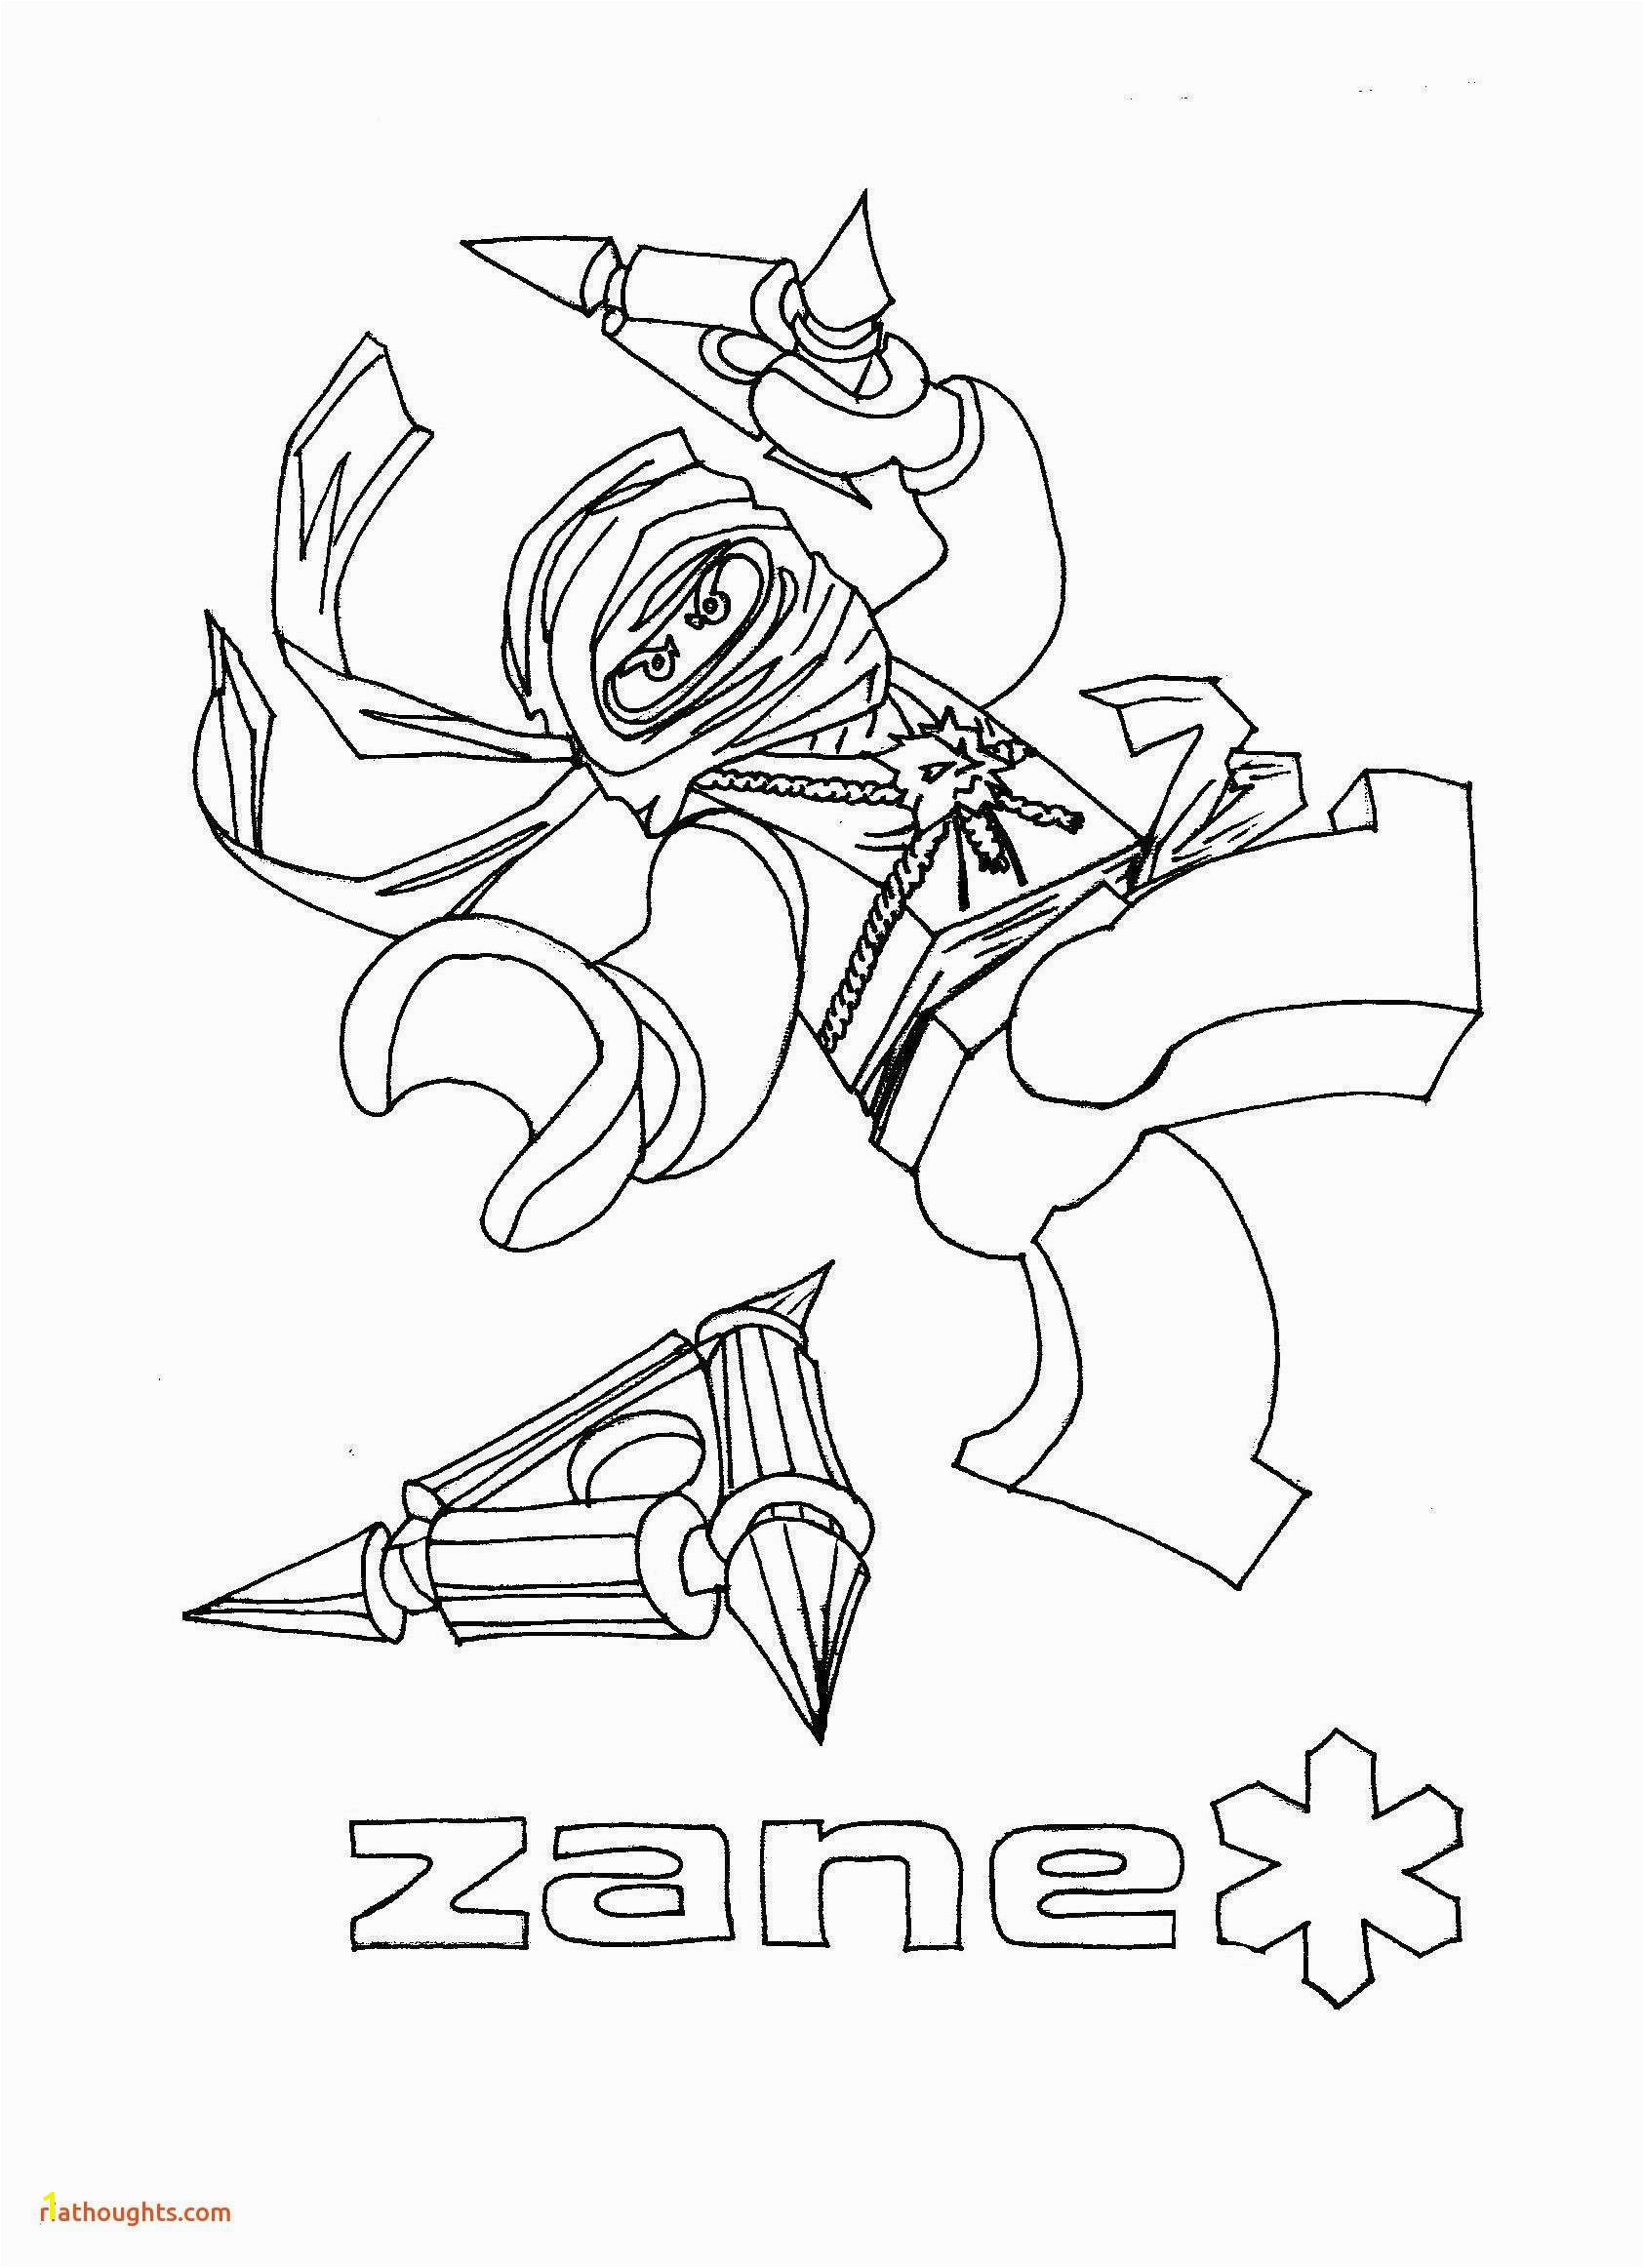 Awesome Coloring Pages Elegant Marvel Coloring Pages Awesome I Pinimg originals 0d 61 31 0d Df1b08